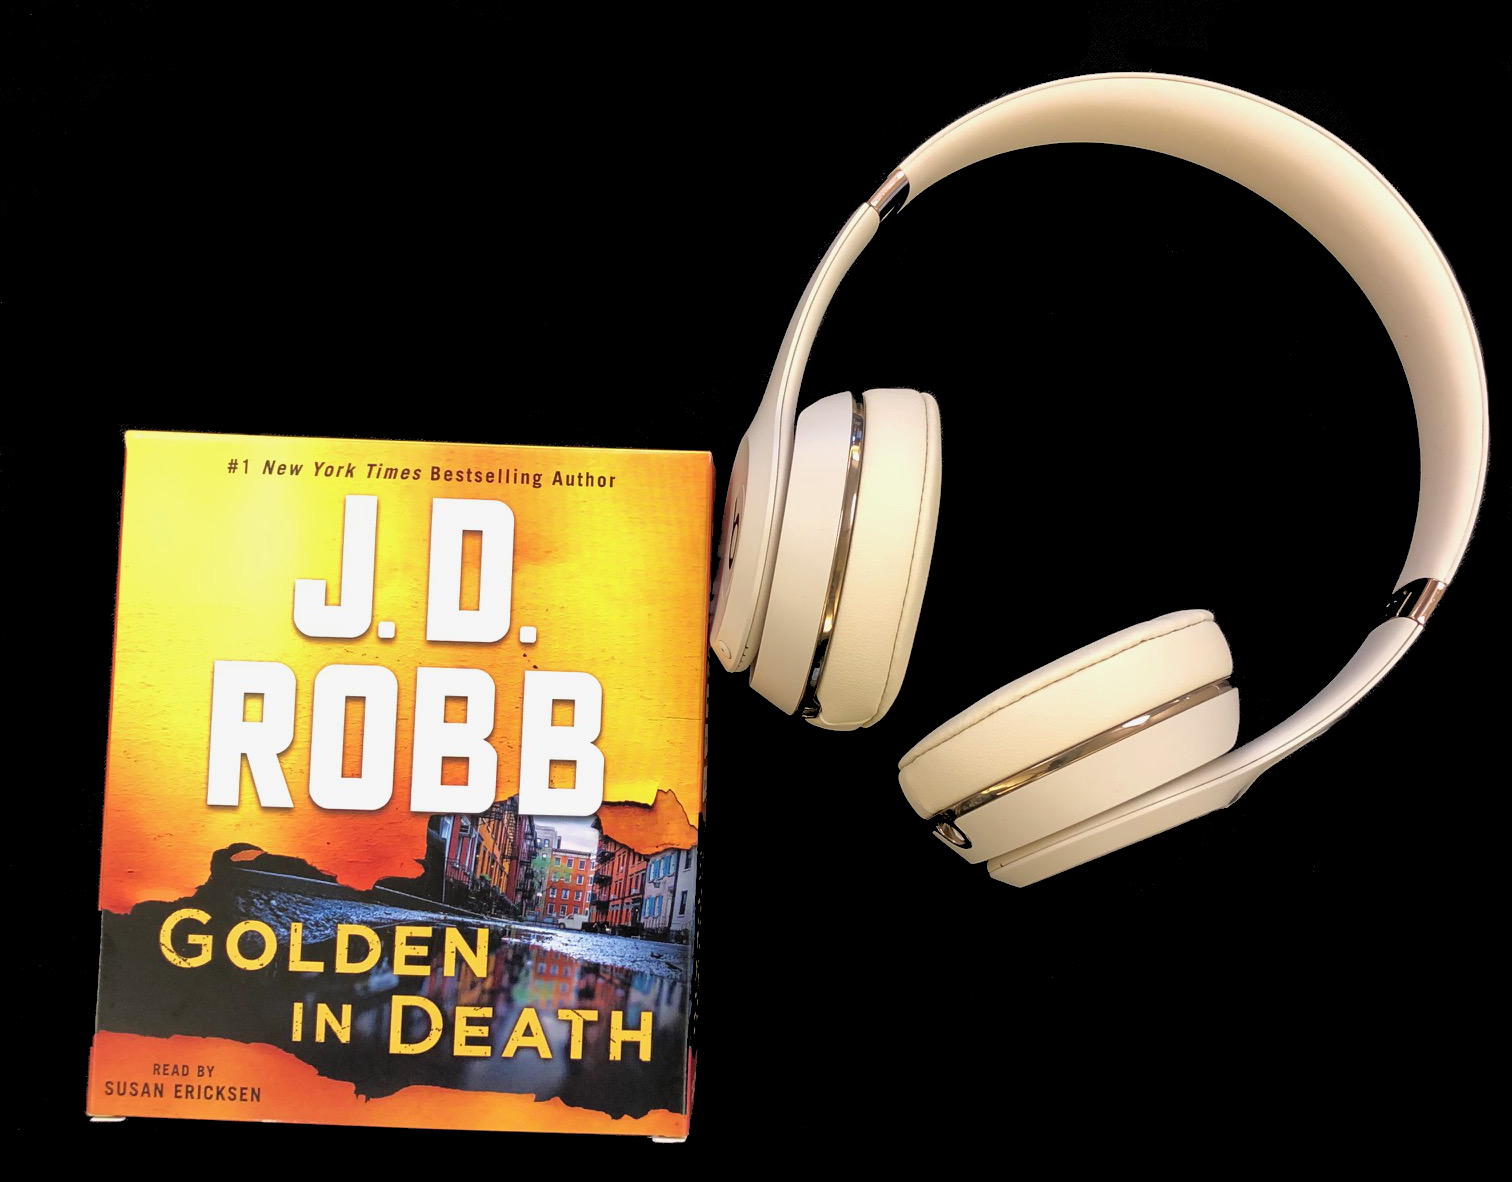 Golden in Death audiobook and headphones